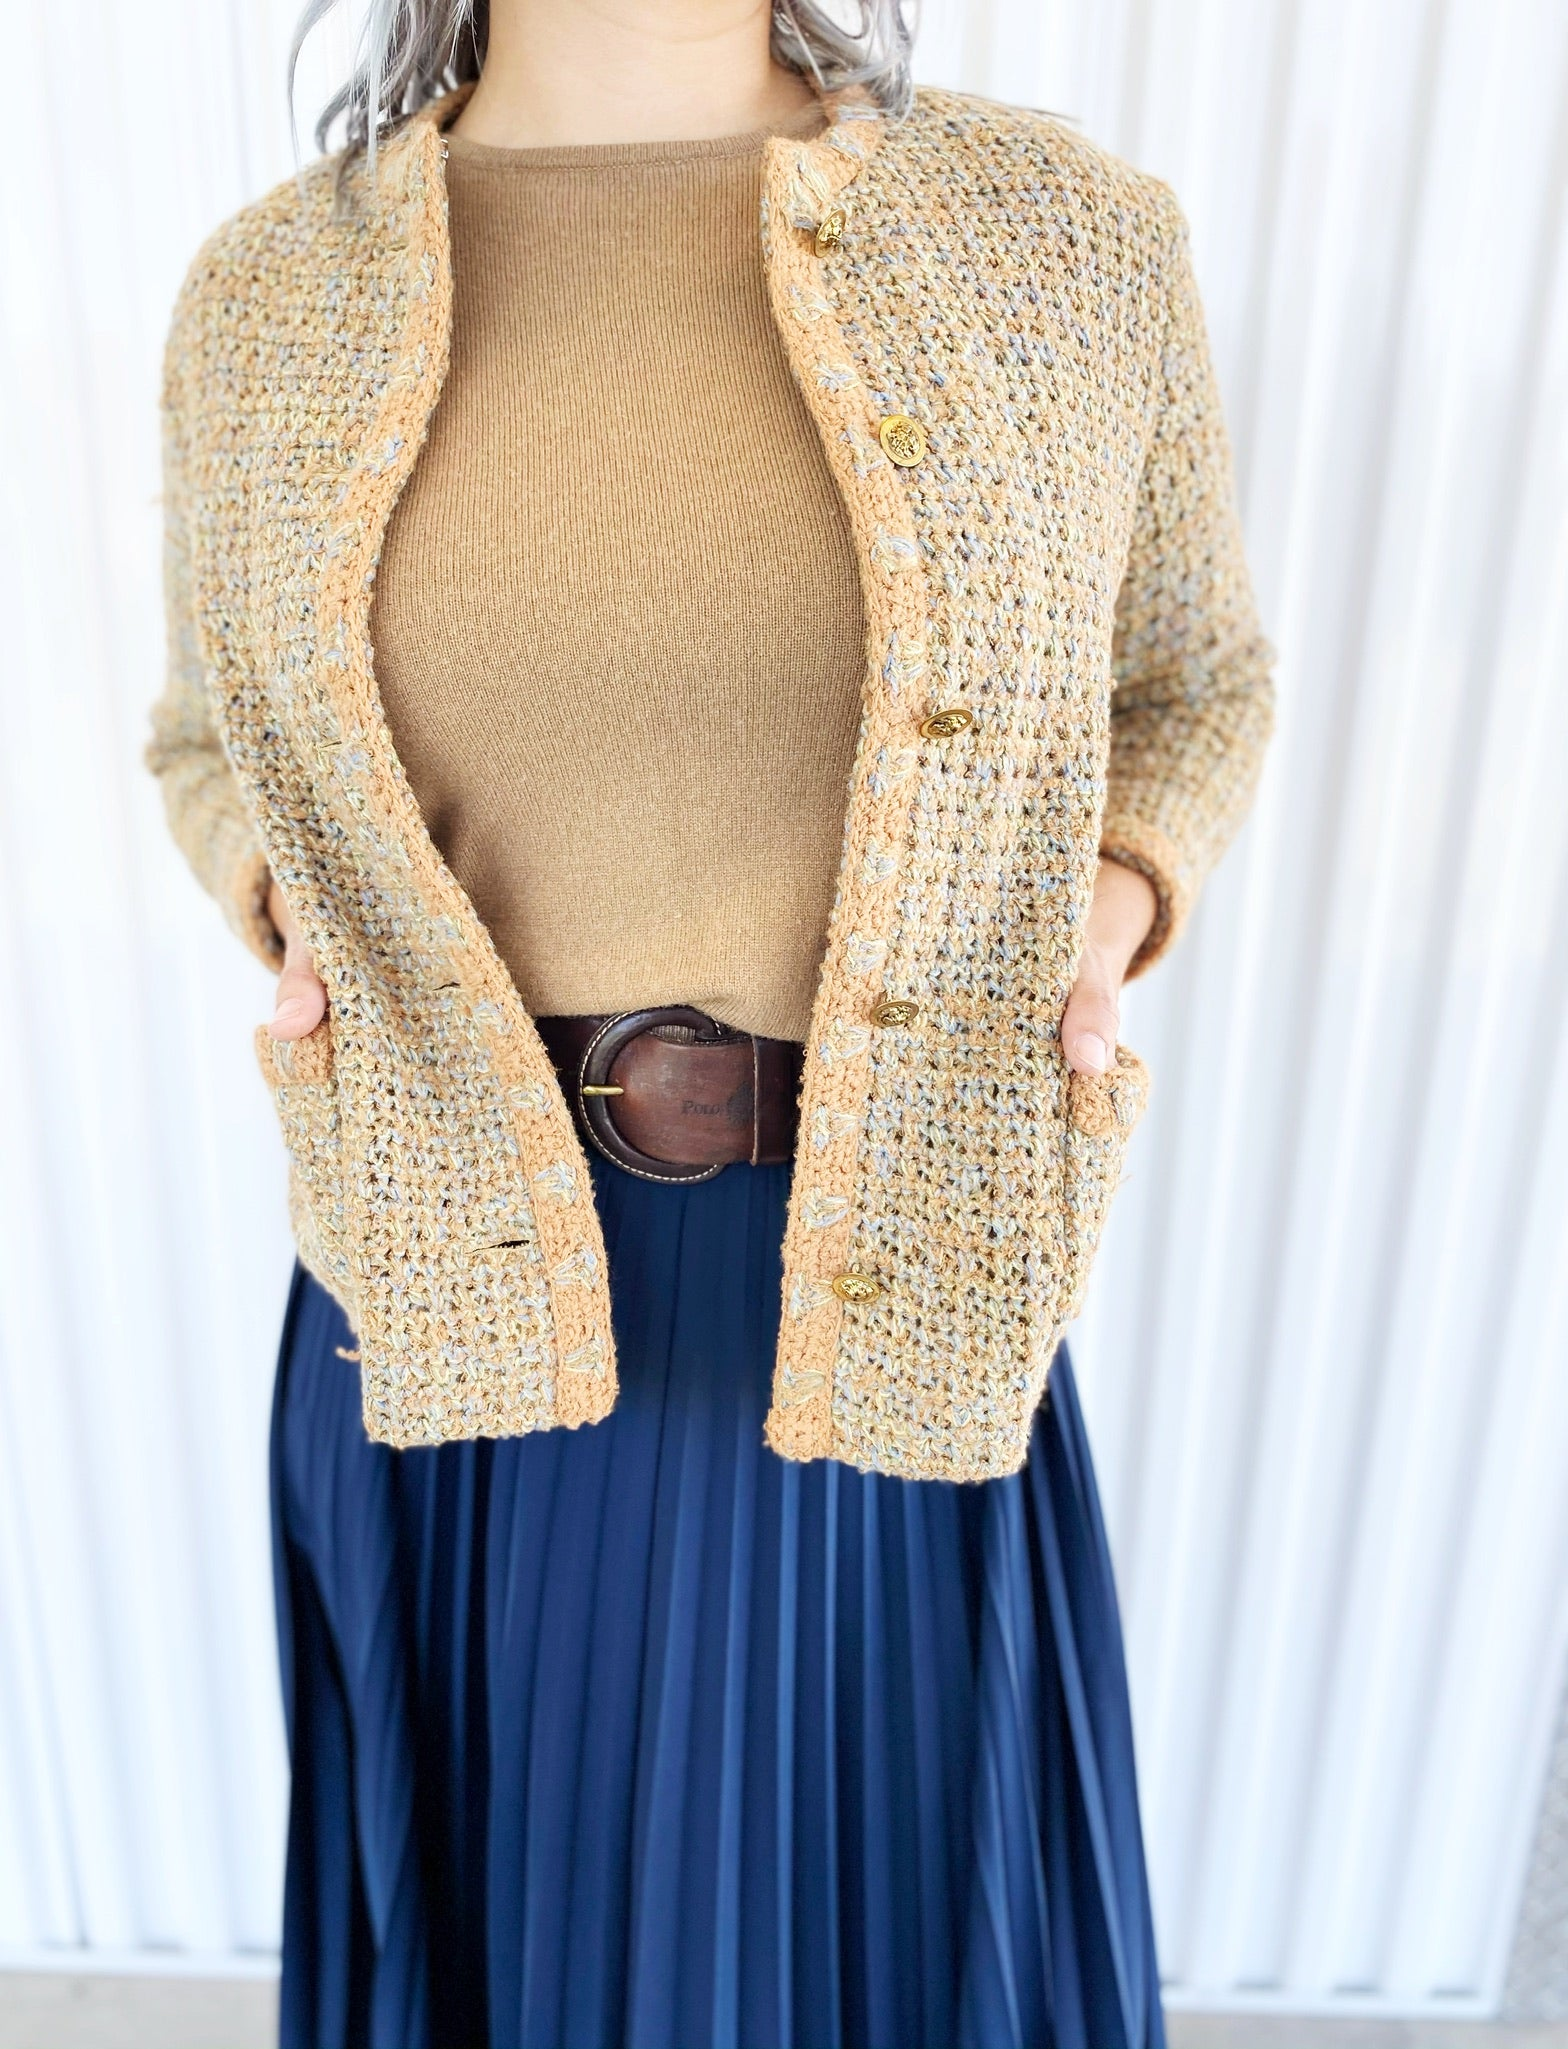 Christele Anne Hand Crocheted Jacket